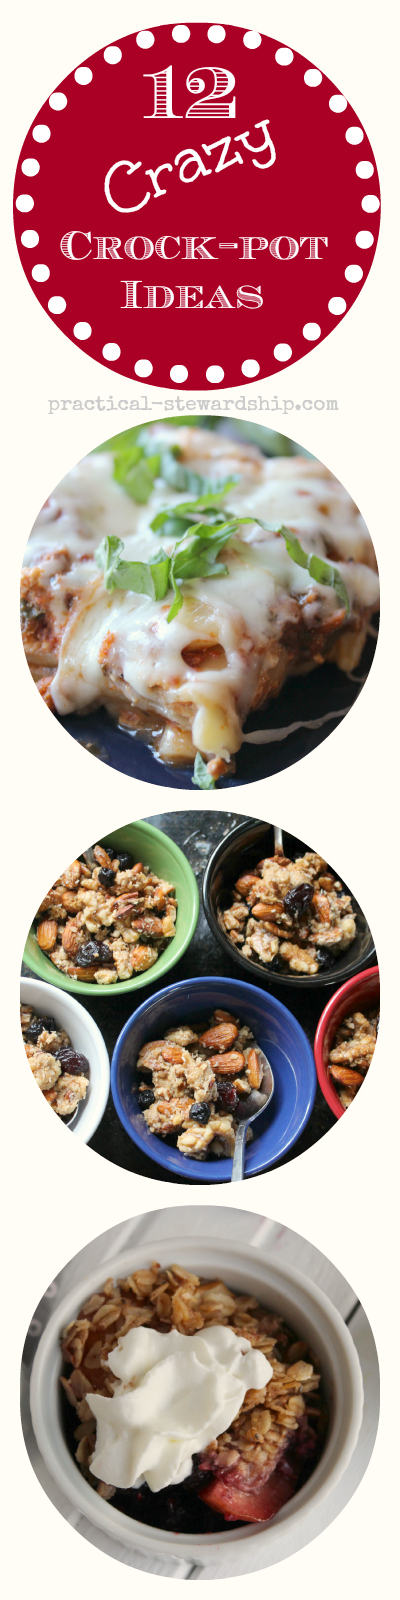 12 Crazy Crock-pot Ideas